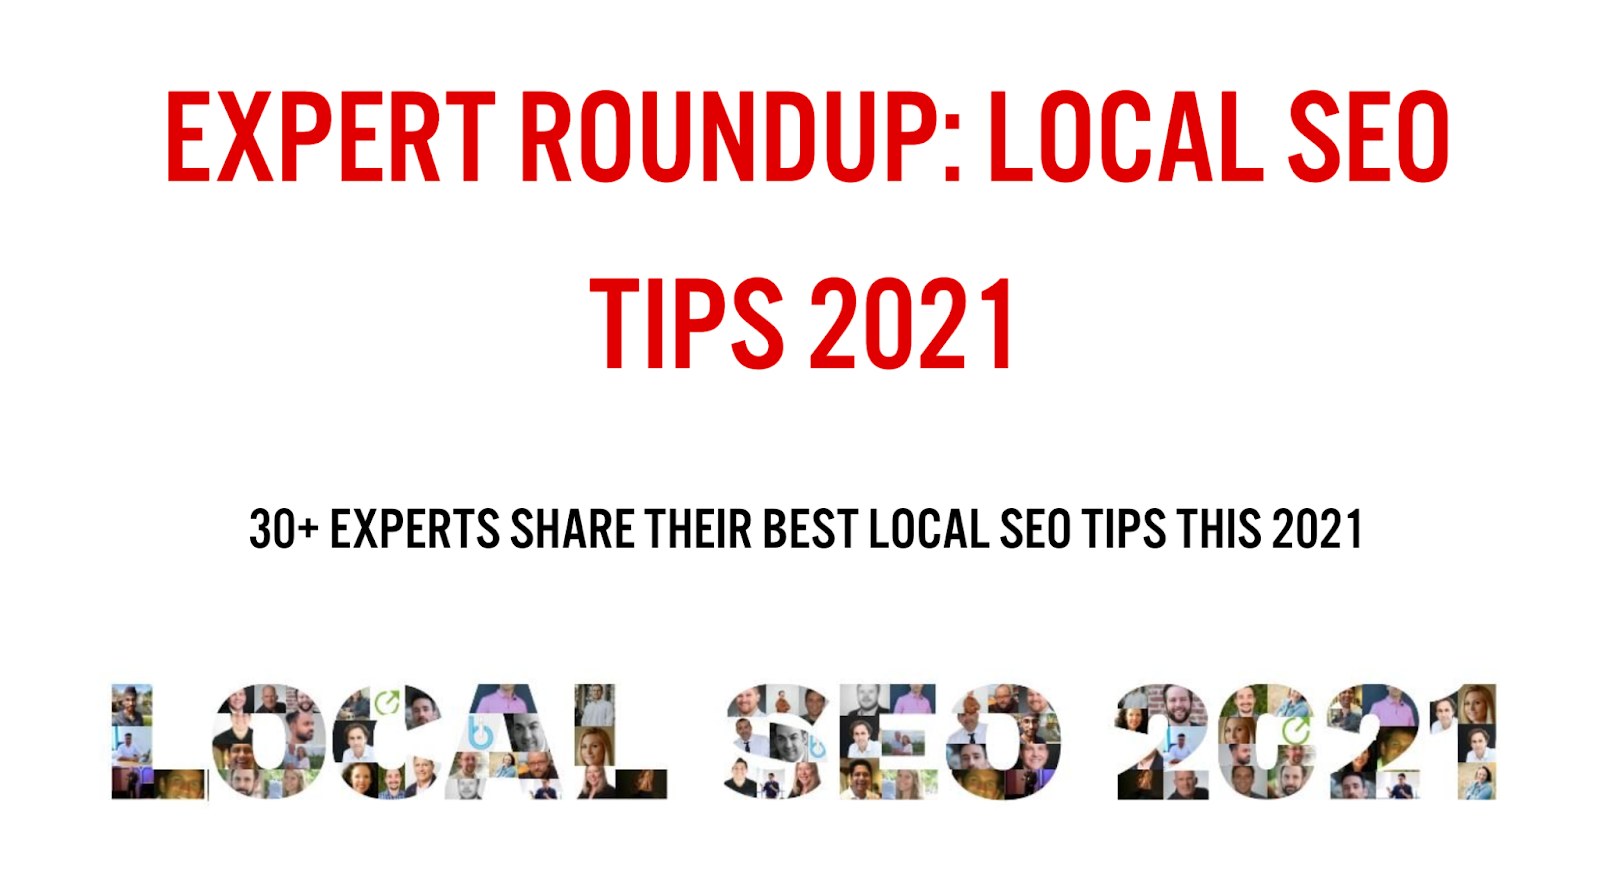 An expert roundup blog about local SEO tips for 2021.